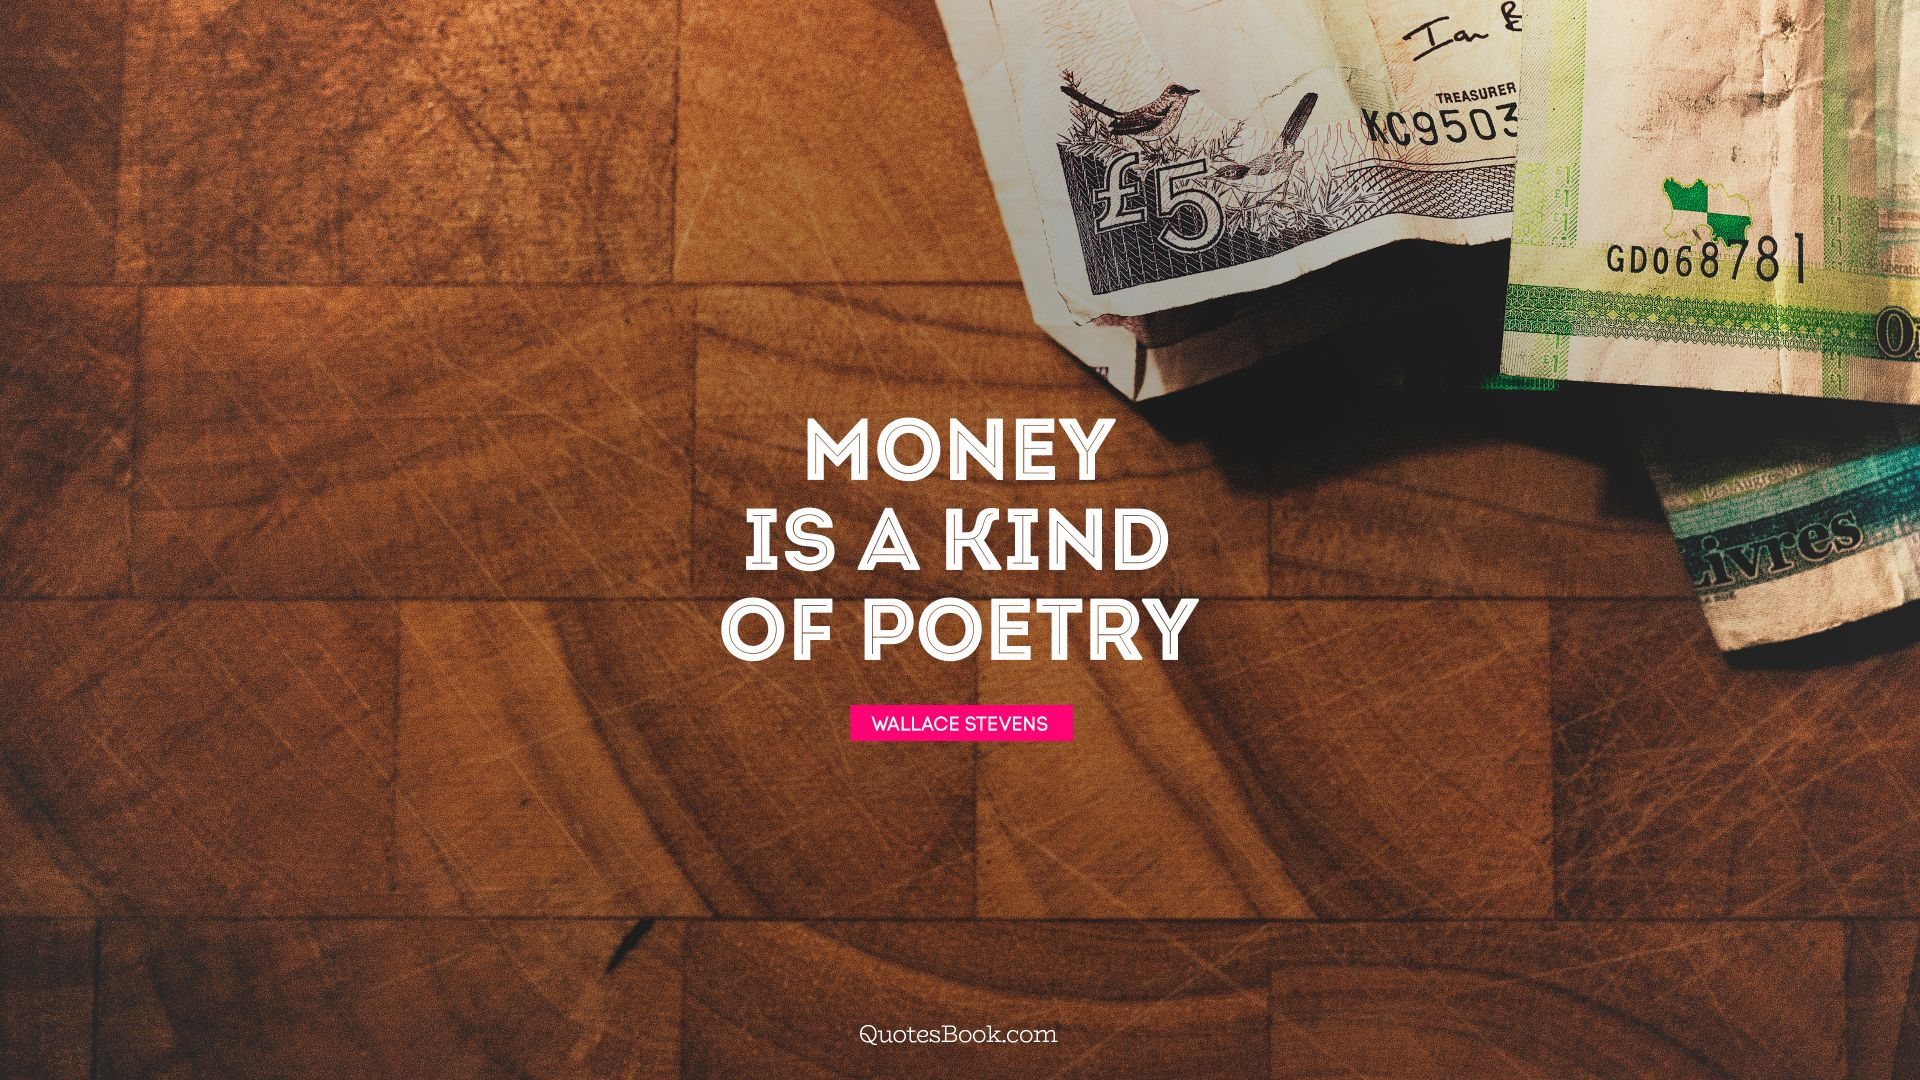 Money is a kind of poetry. - Quote by Wallace Stevens